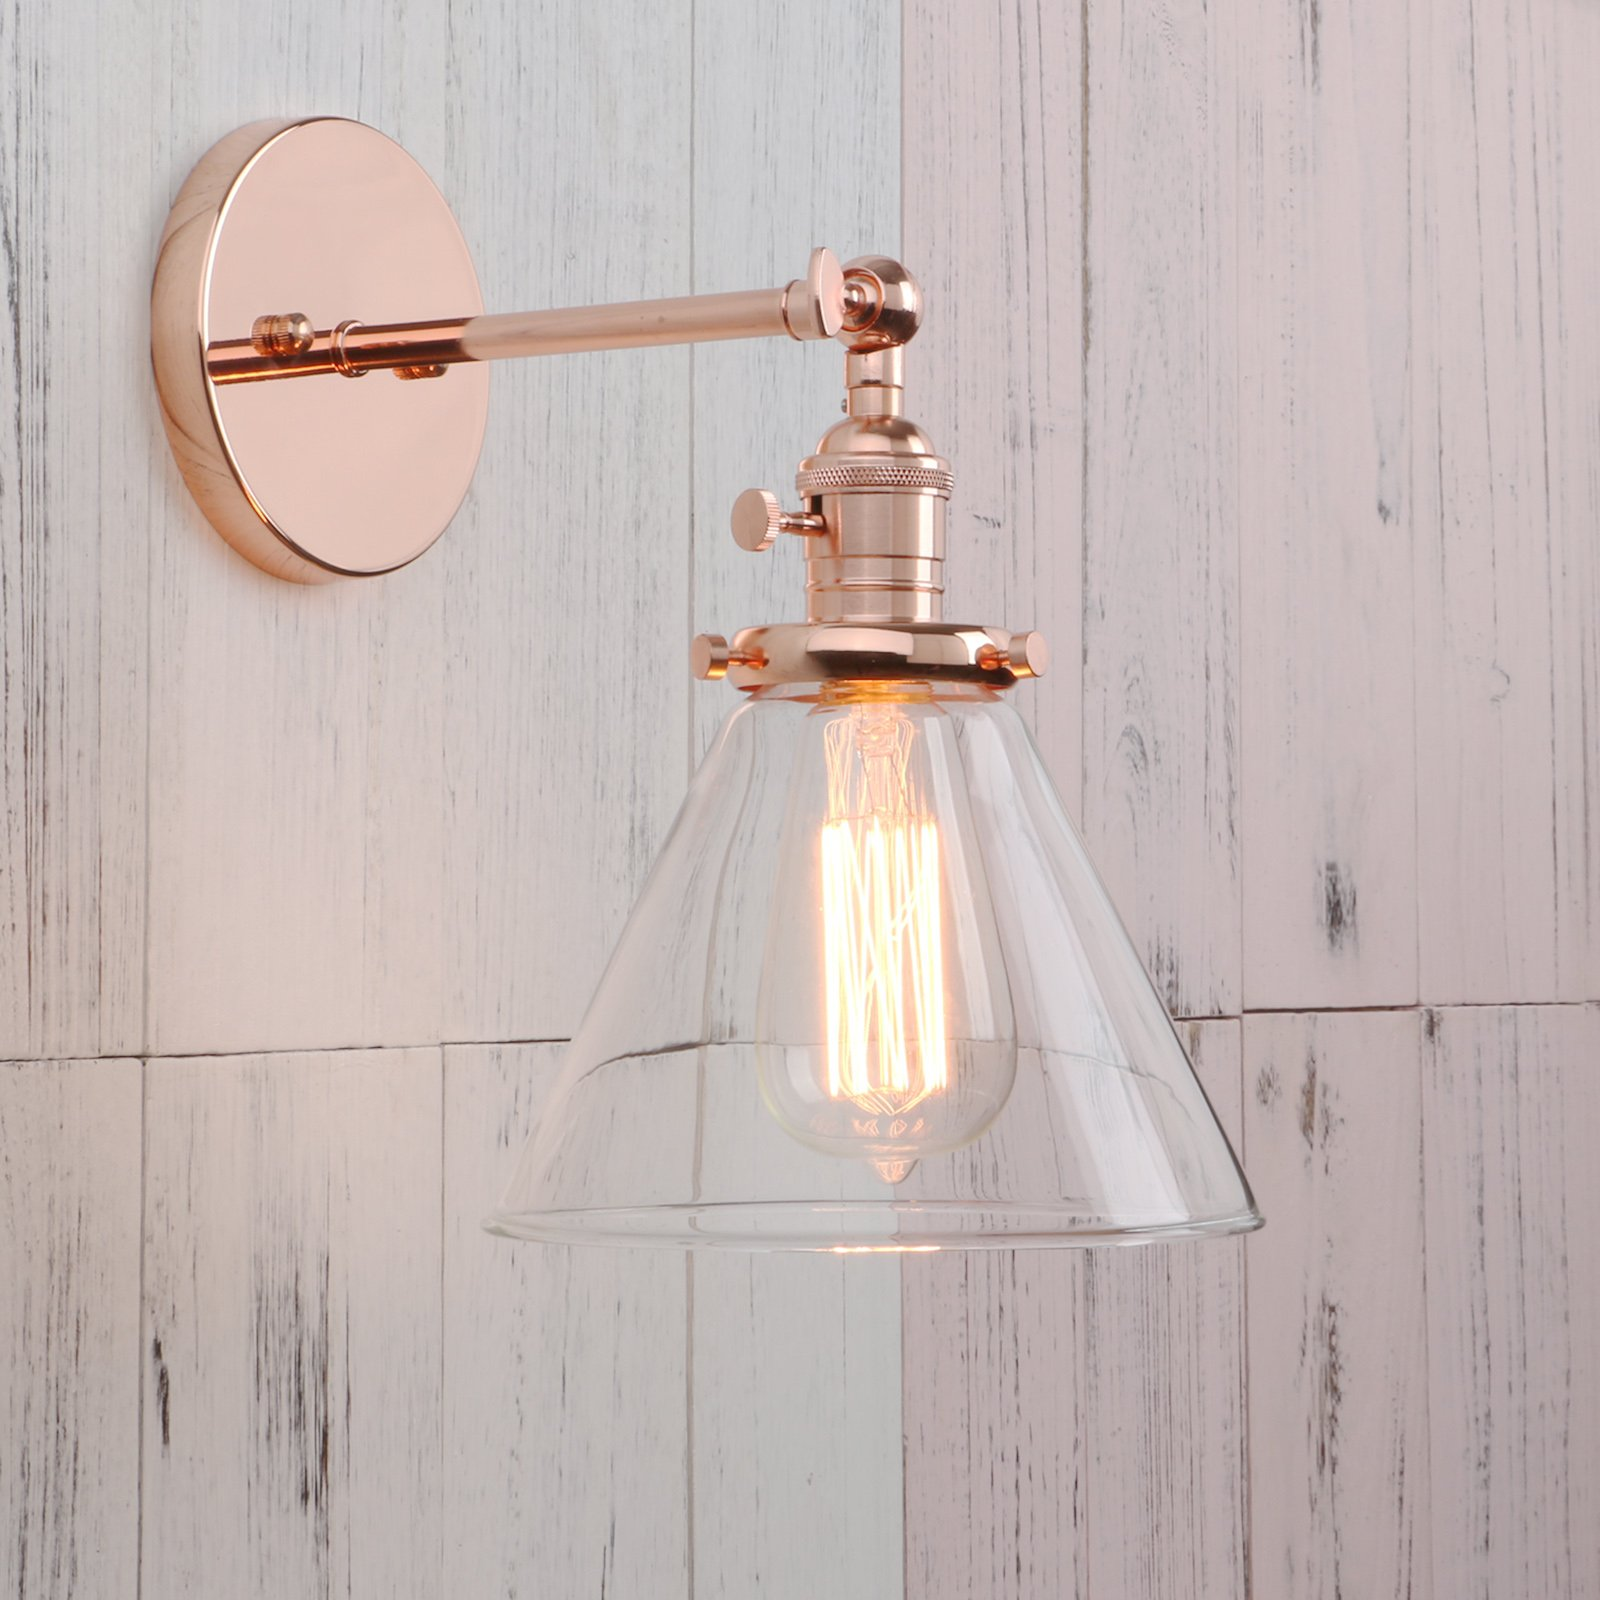 Sconce Lamp Wall Light Clear Funnel Glass Shade Home